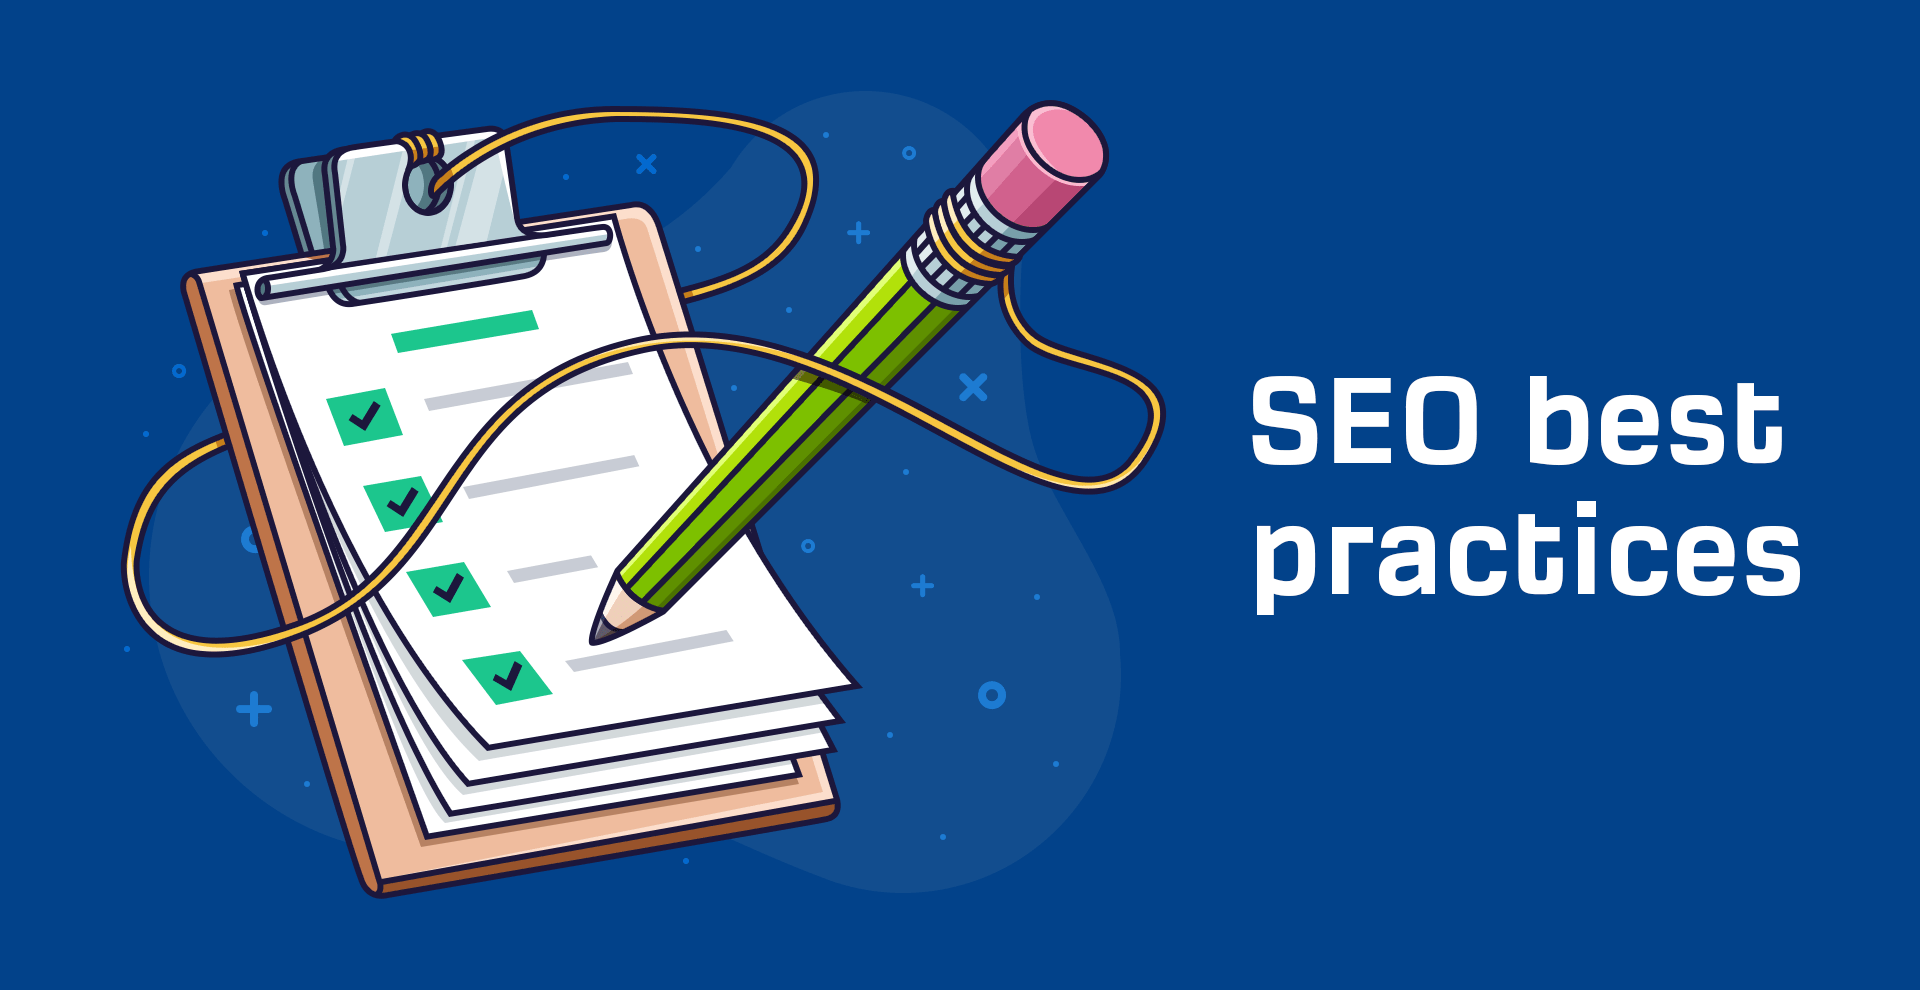 fb seo best practices